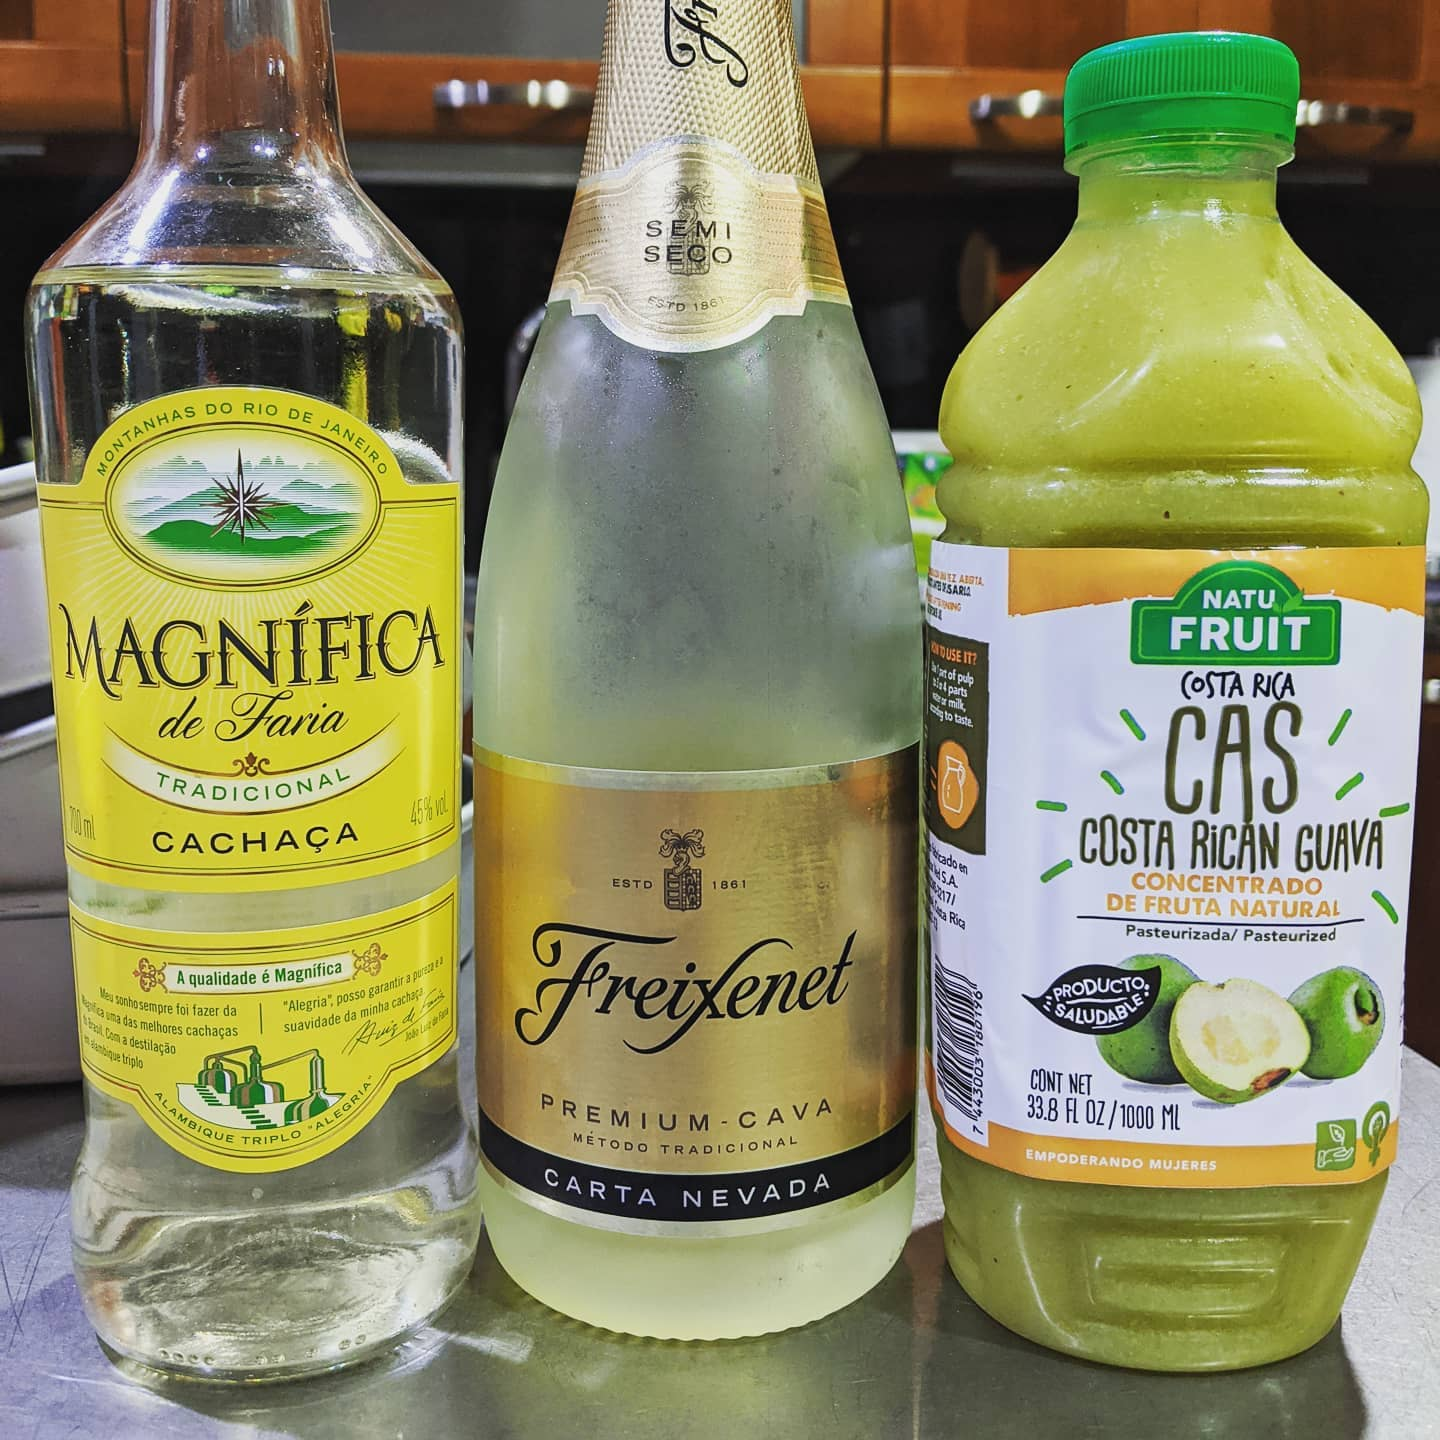 About to get wild with the quarantine drinks in here - cas, cachaça, and bubbly. How do y'all think this is gonna go?